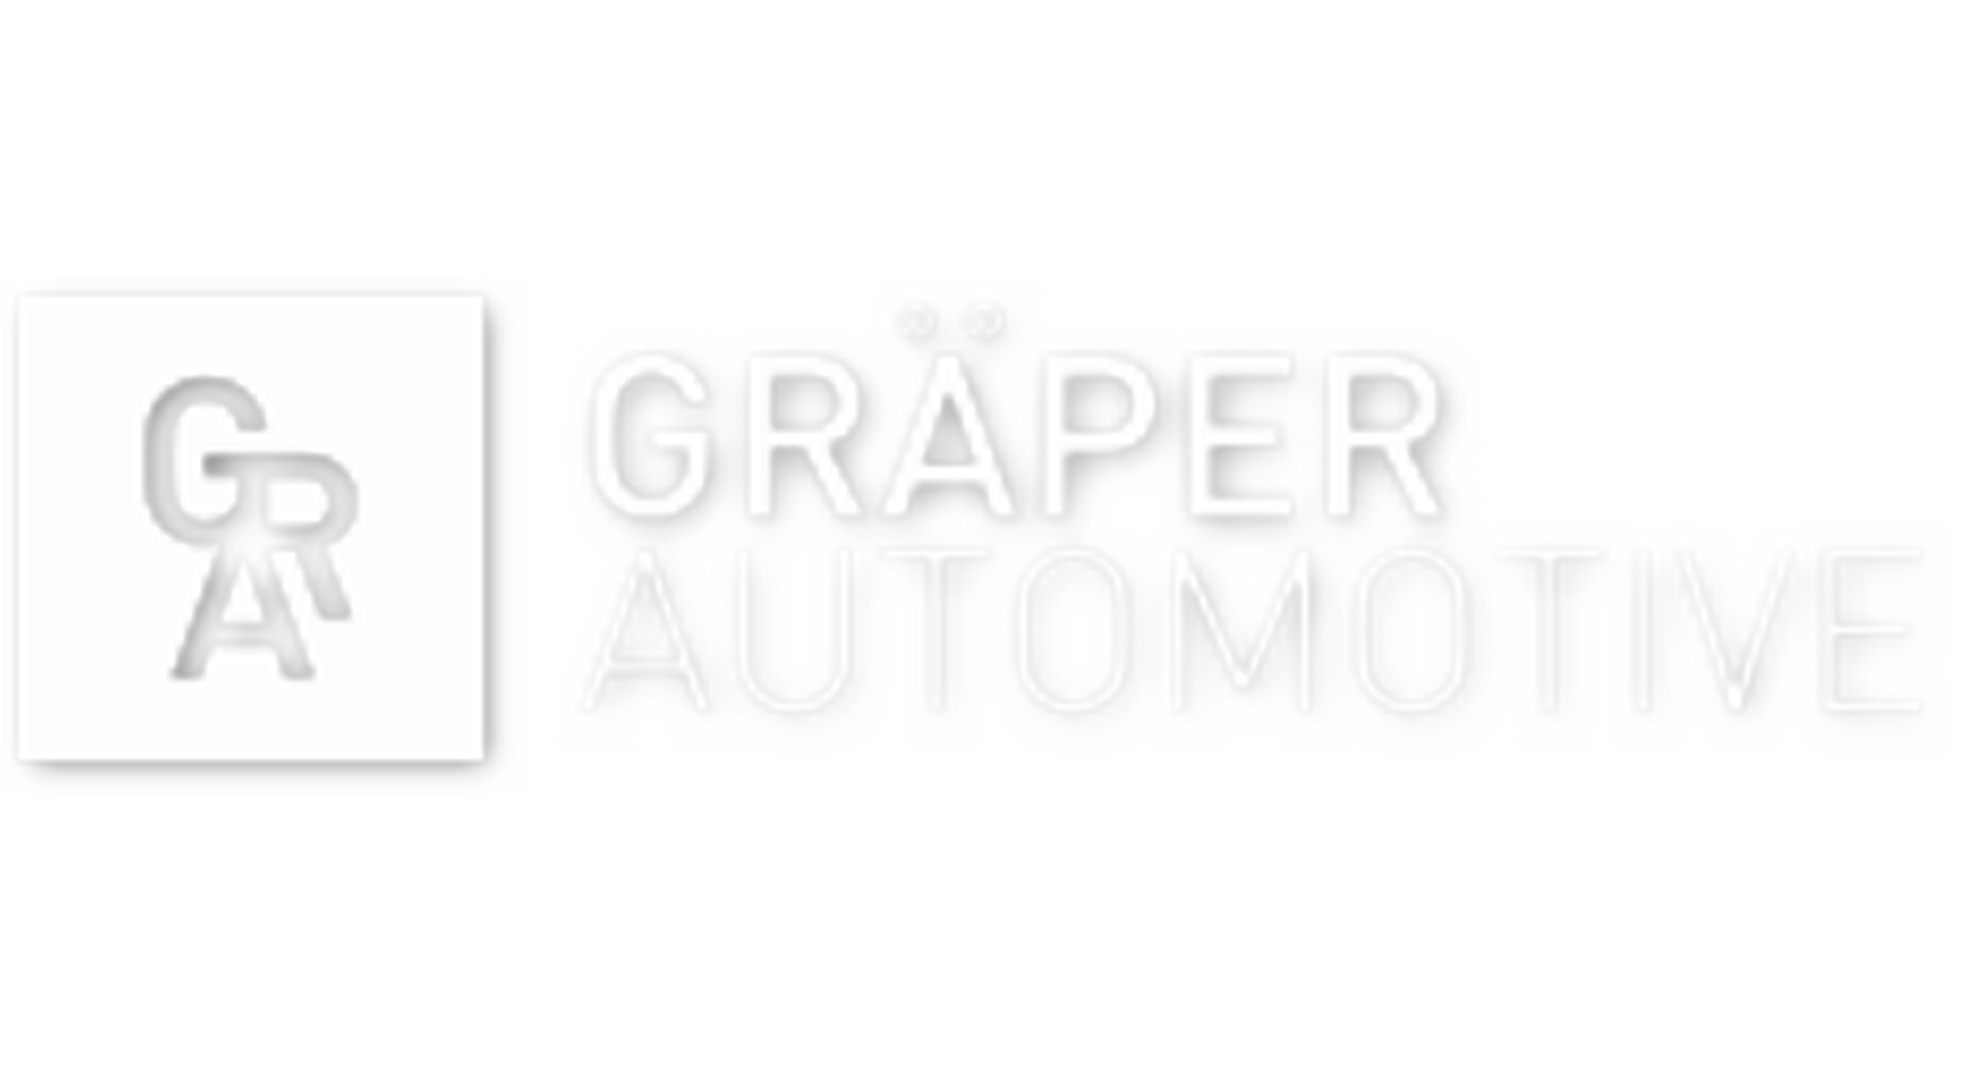 Graper Automotive